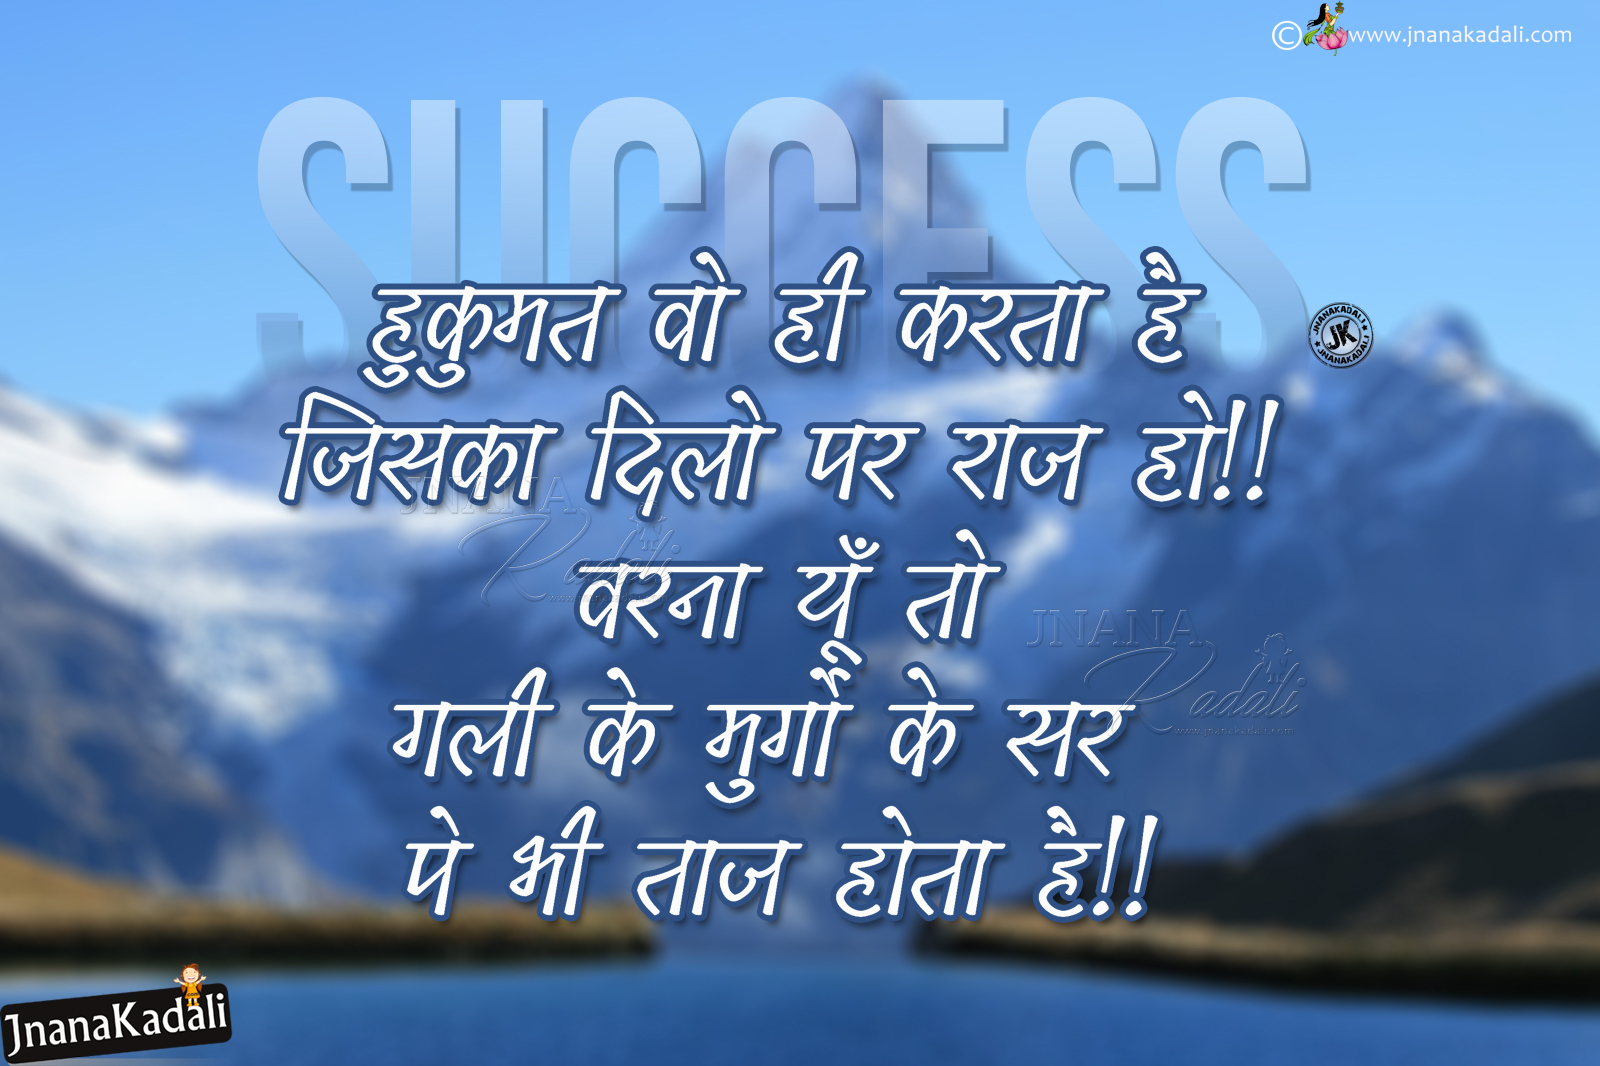 Inspirational Hindi Best Success Saying Best Hindi Success Anmol Vachan With Hd Wallpapers Jnana Kadali Com Telugu Quotes English Quotes Hindi Quotes Tamil Quotes Dharmasandehalu